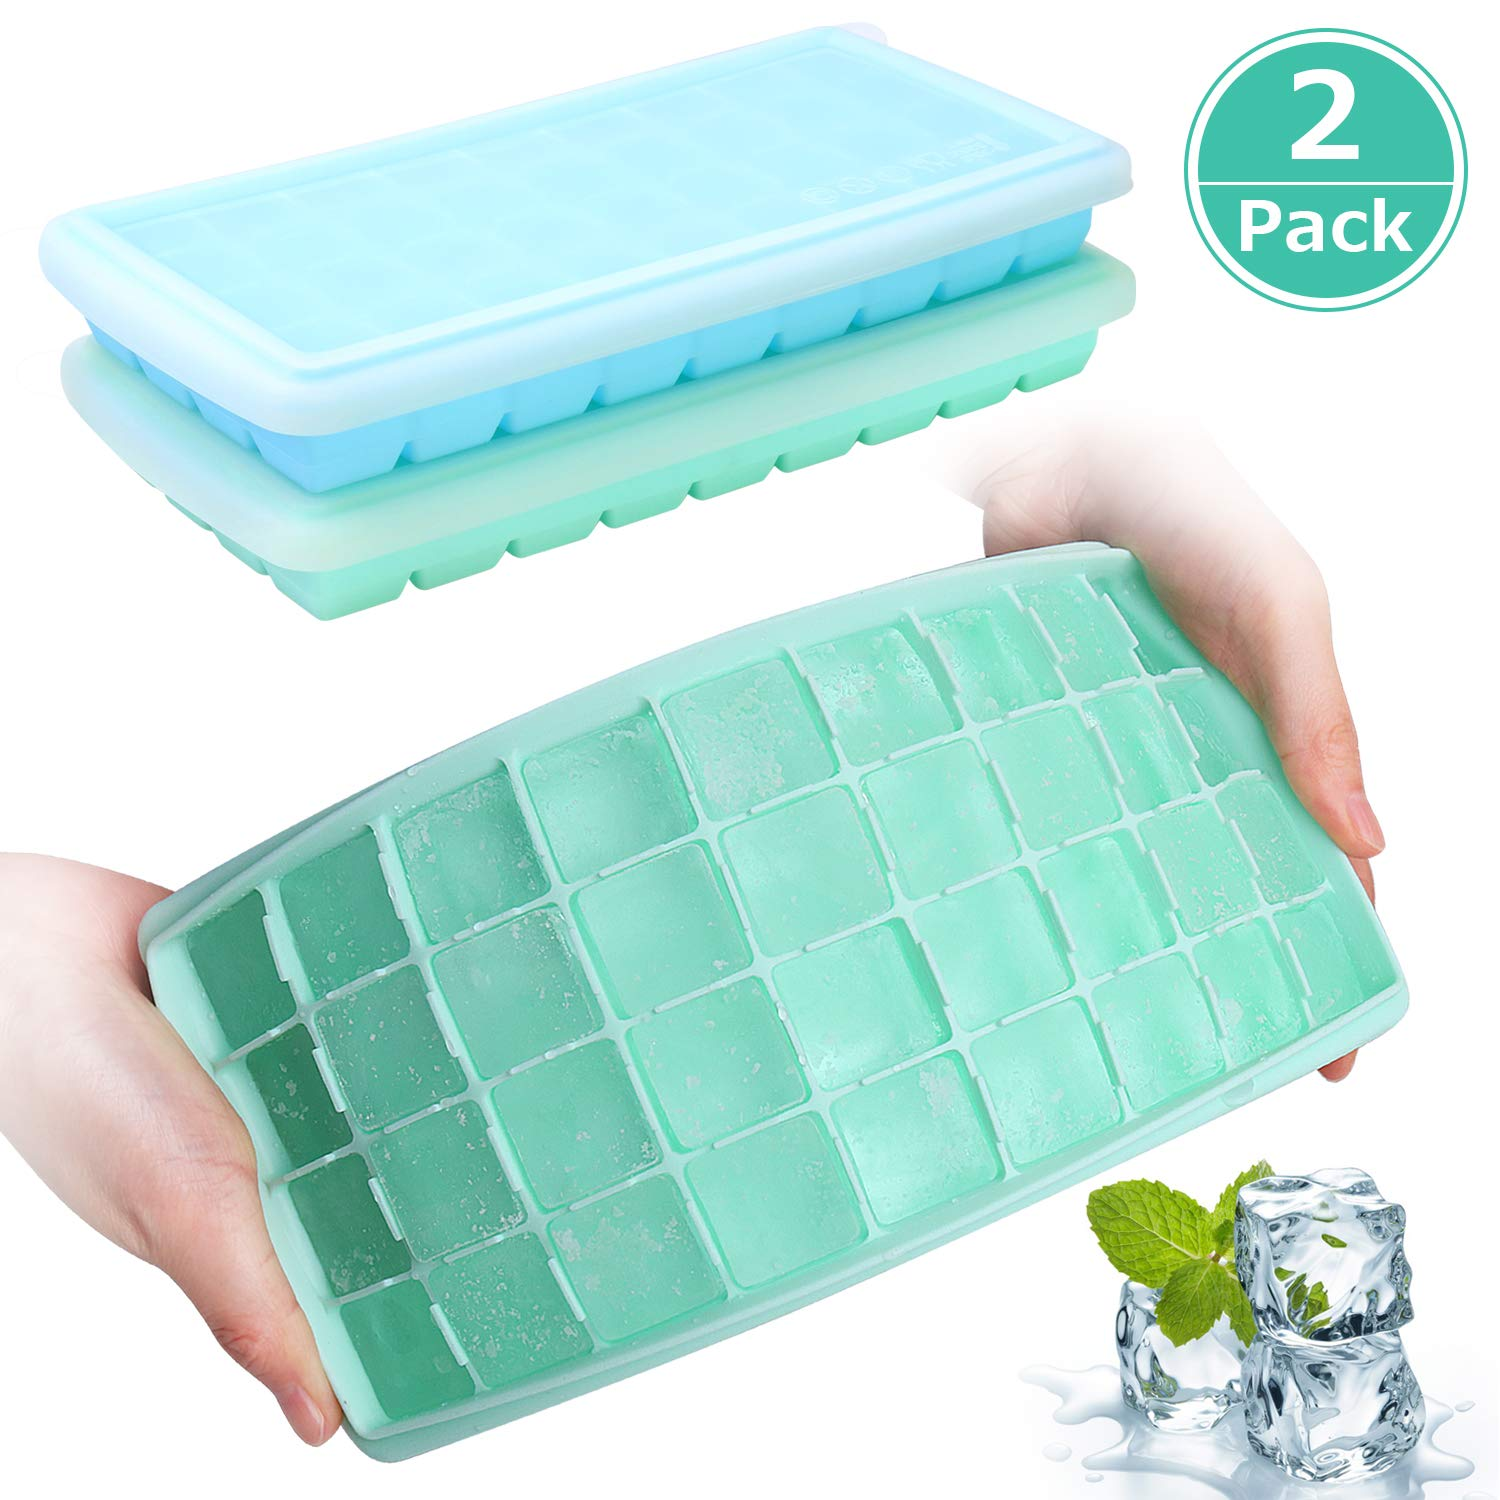 Ice Cube Trays with Lids, GDREAMT 2 Pack Silicone Ice Cube Trays Flexible and Easy Release 36 Ice Cube Molds for Whiskey, Cocktails - BPA Free, Stackable Durable, Dishwasher Safe by GDREAMT